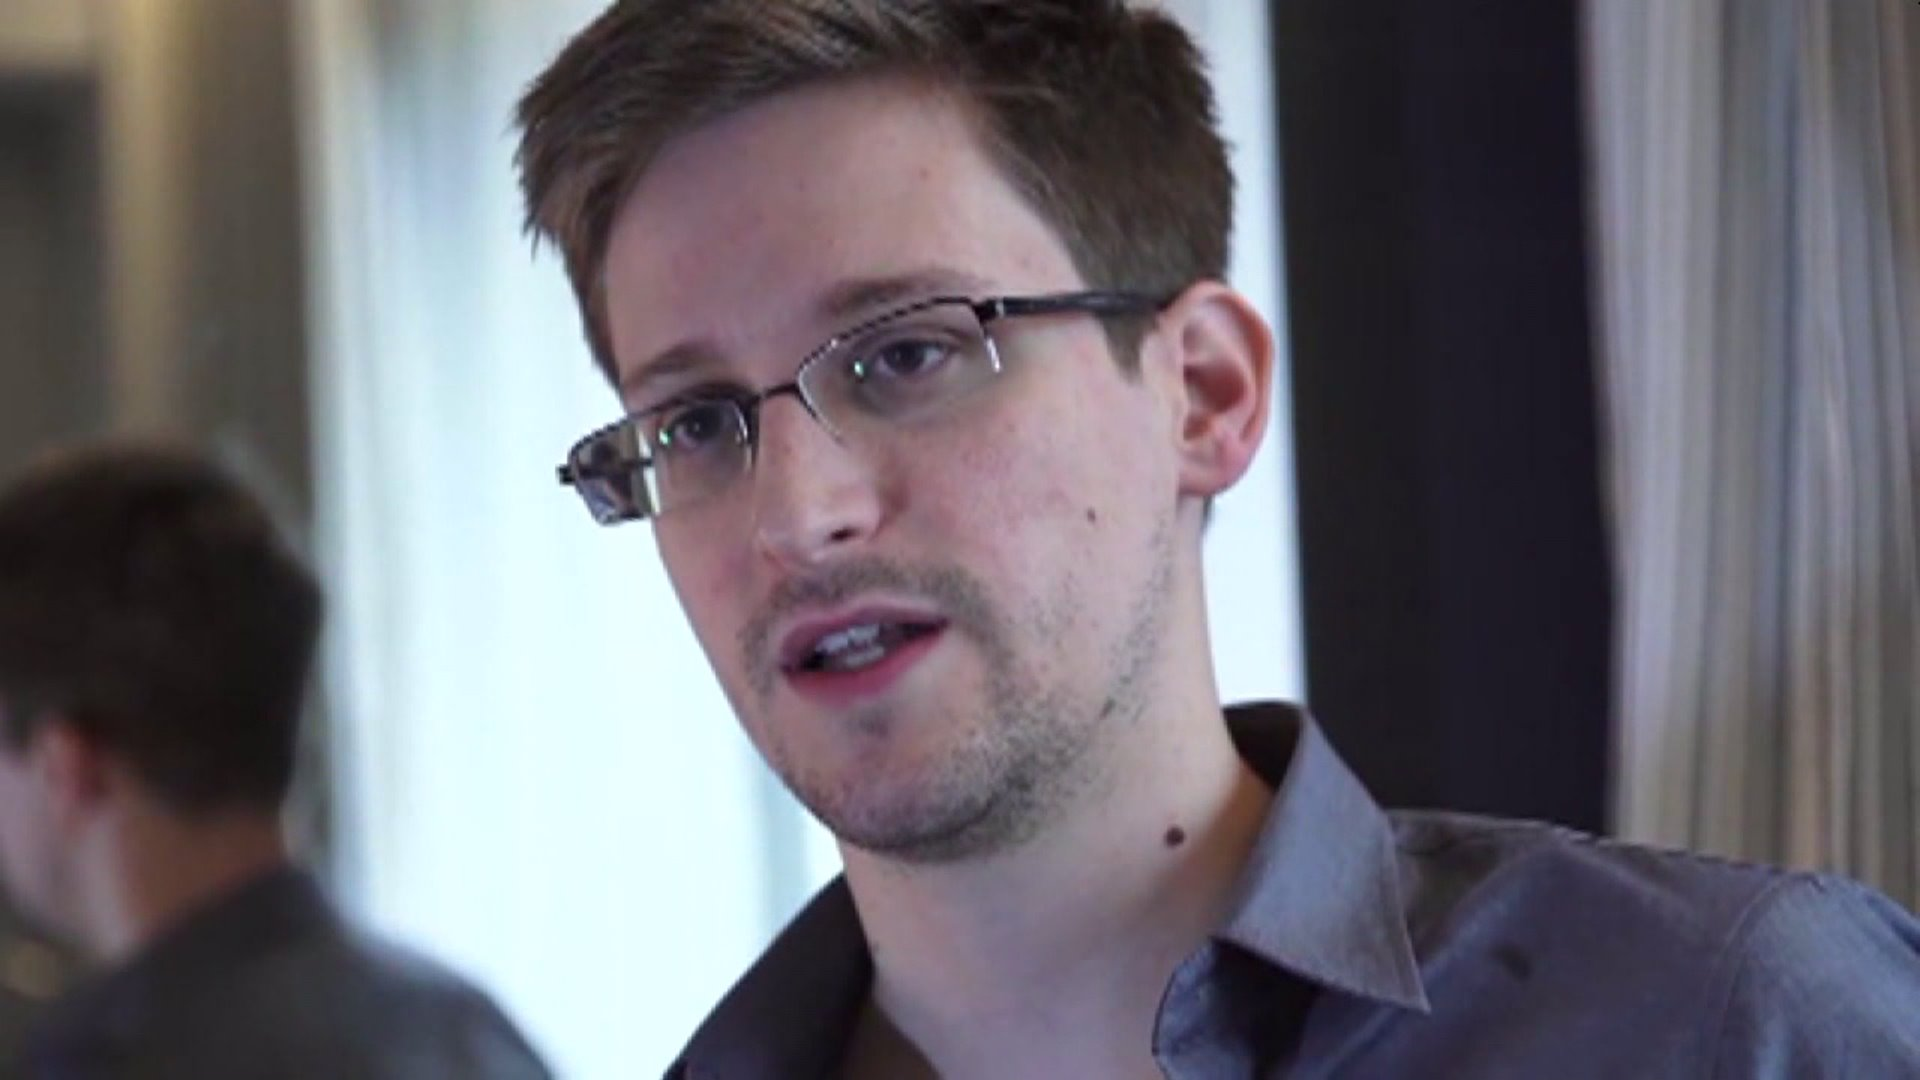 A Norwegian member of parliament nominated former U.S. National Security Agency contractor Edward Snowden for the 2014 Nobel Peace Prize on Wednesday, ...